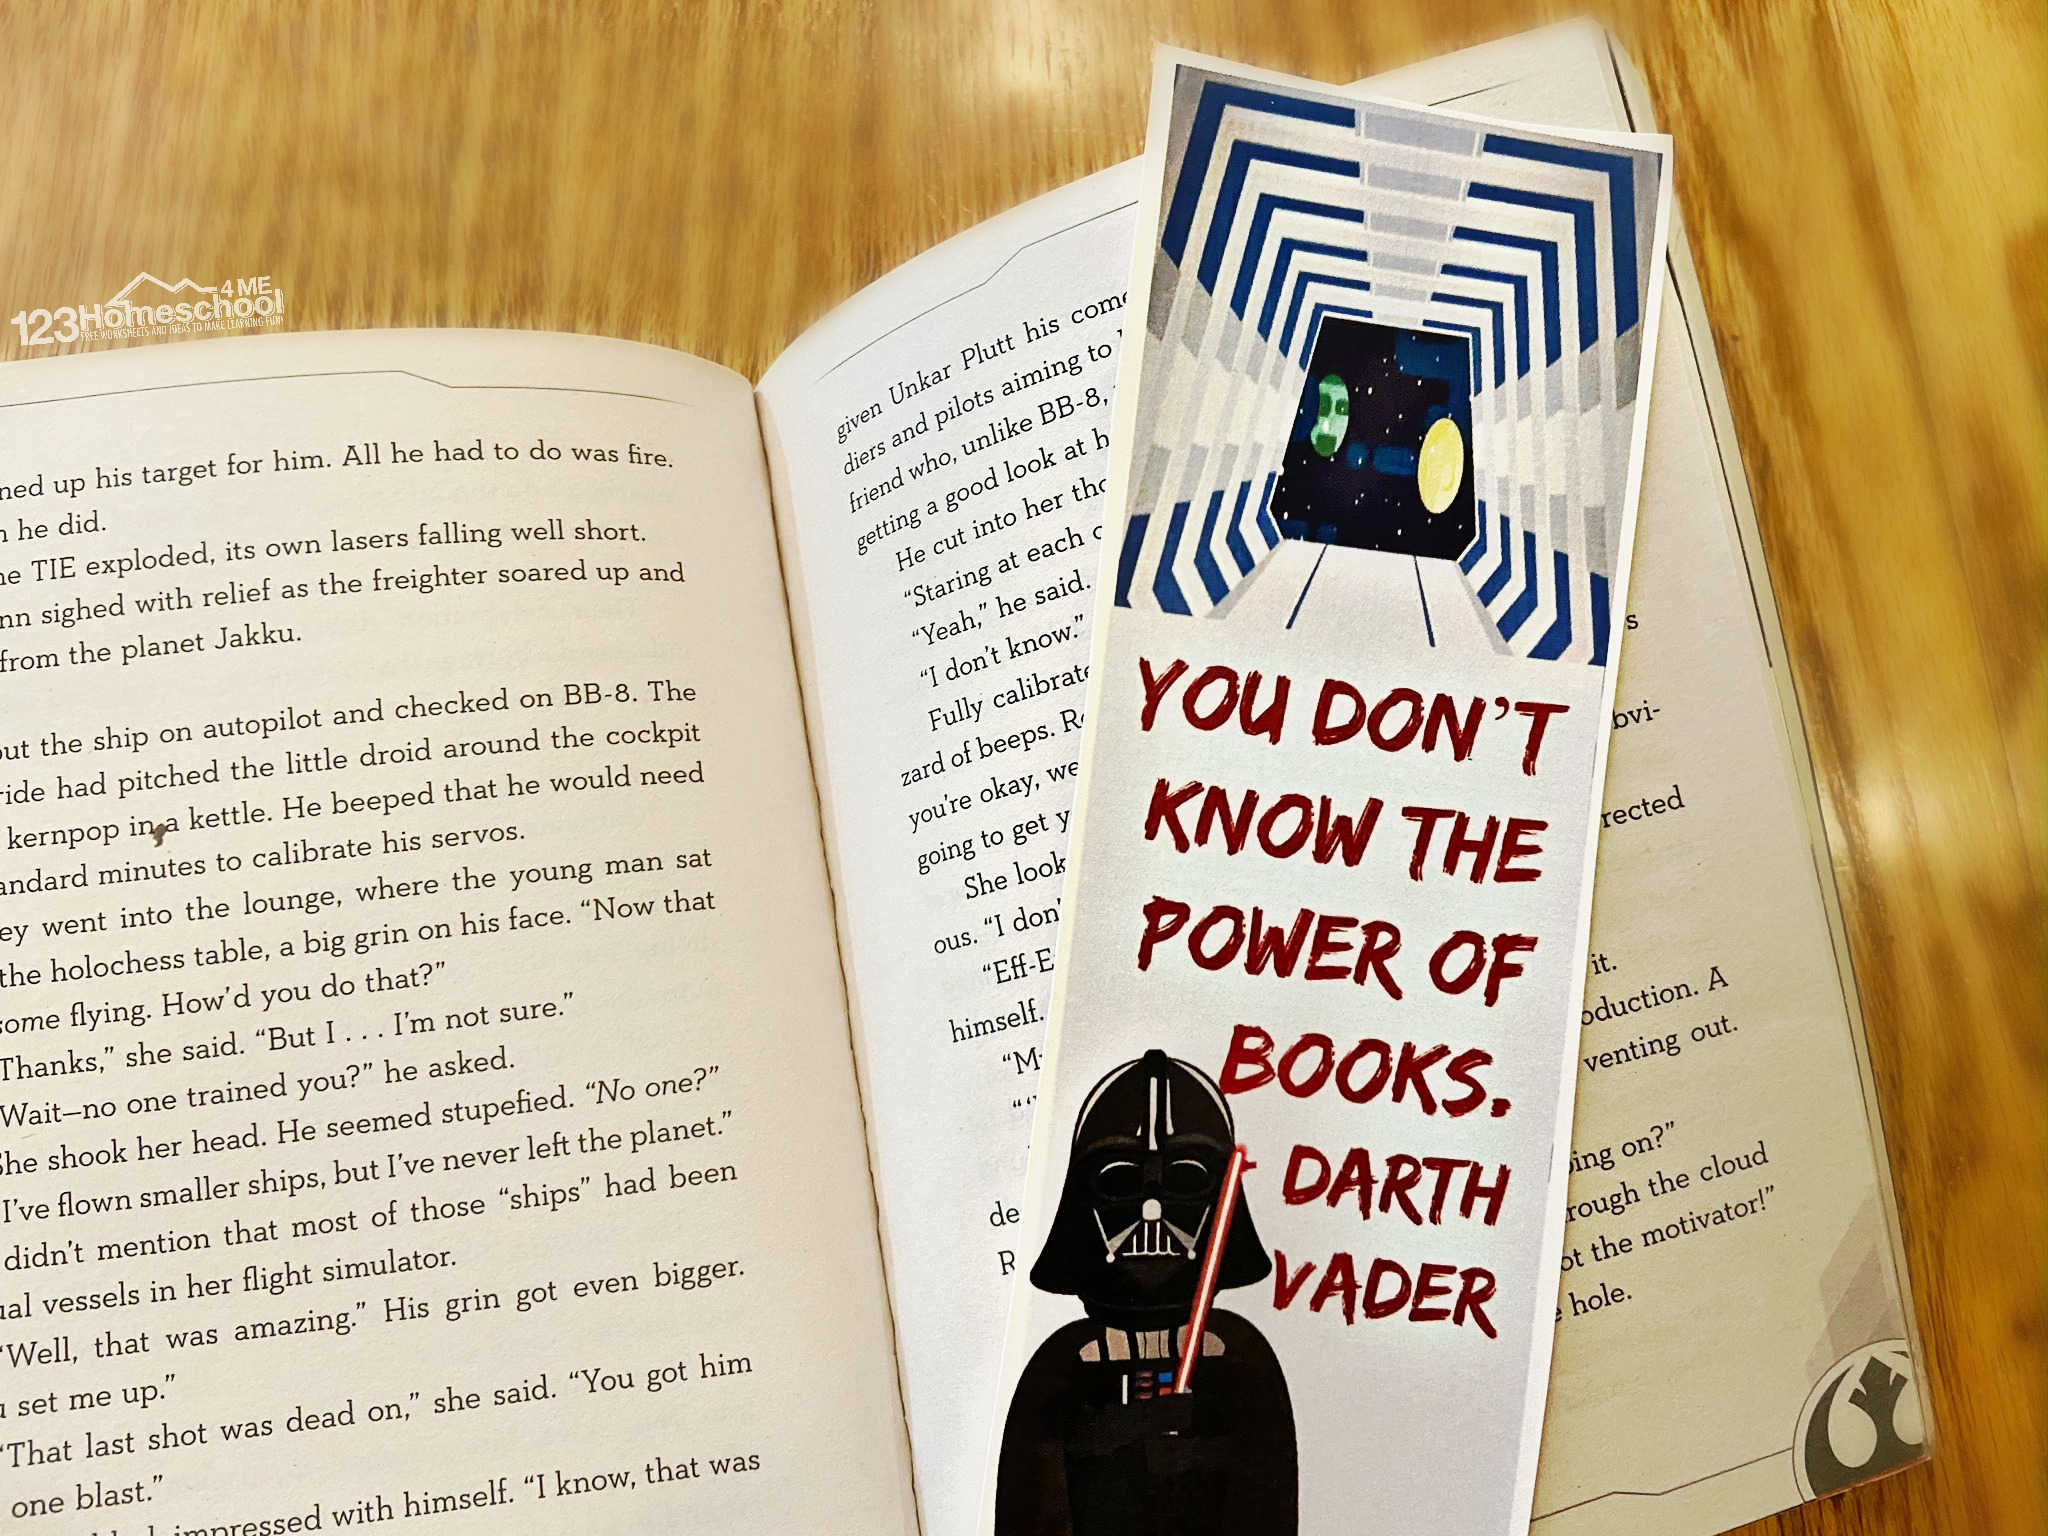 printable star wars bookmarks with darth vadar saying you don't know the power of books